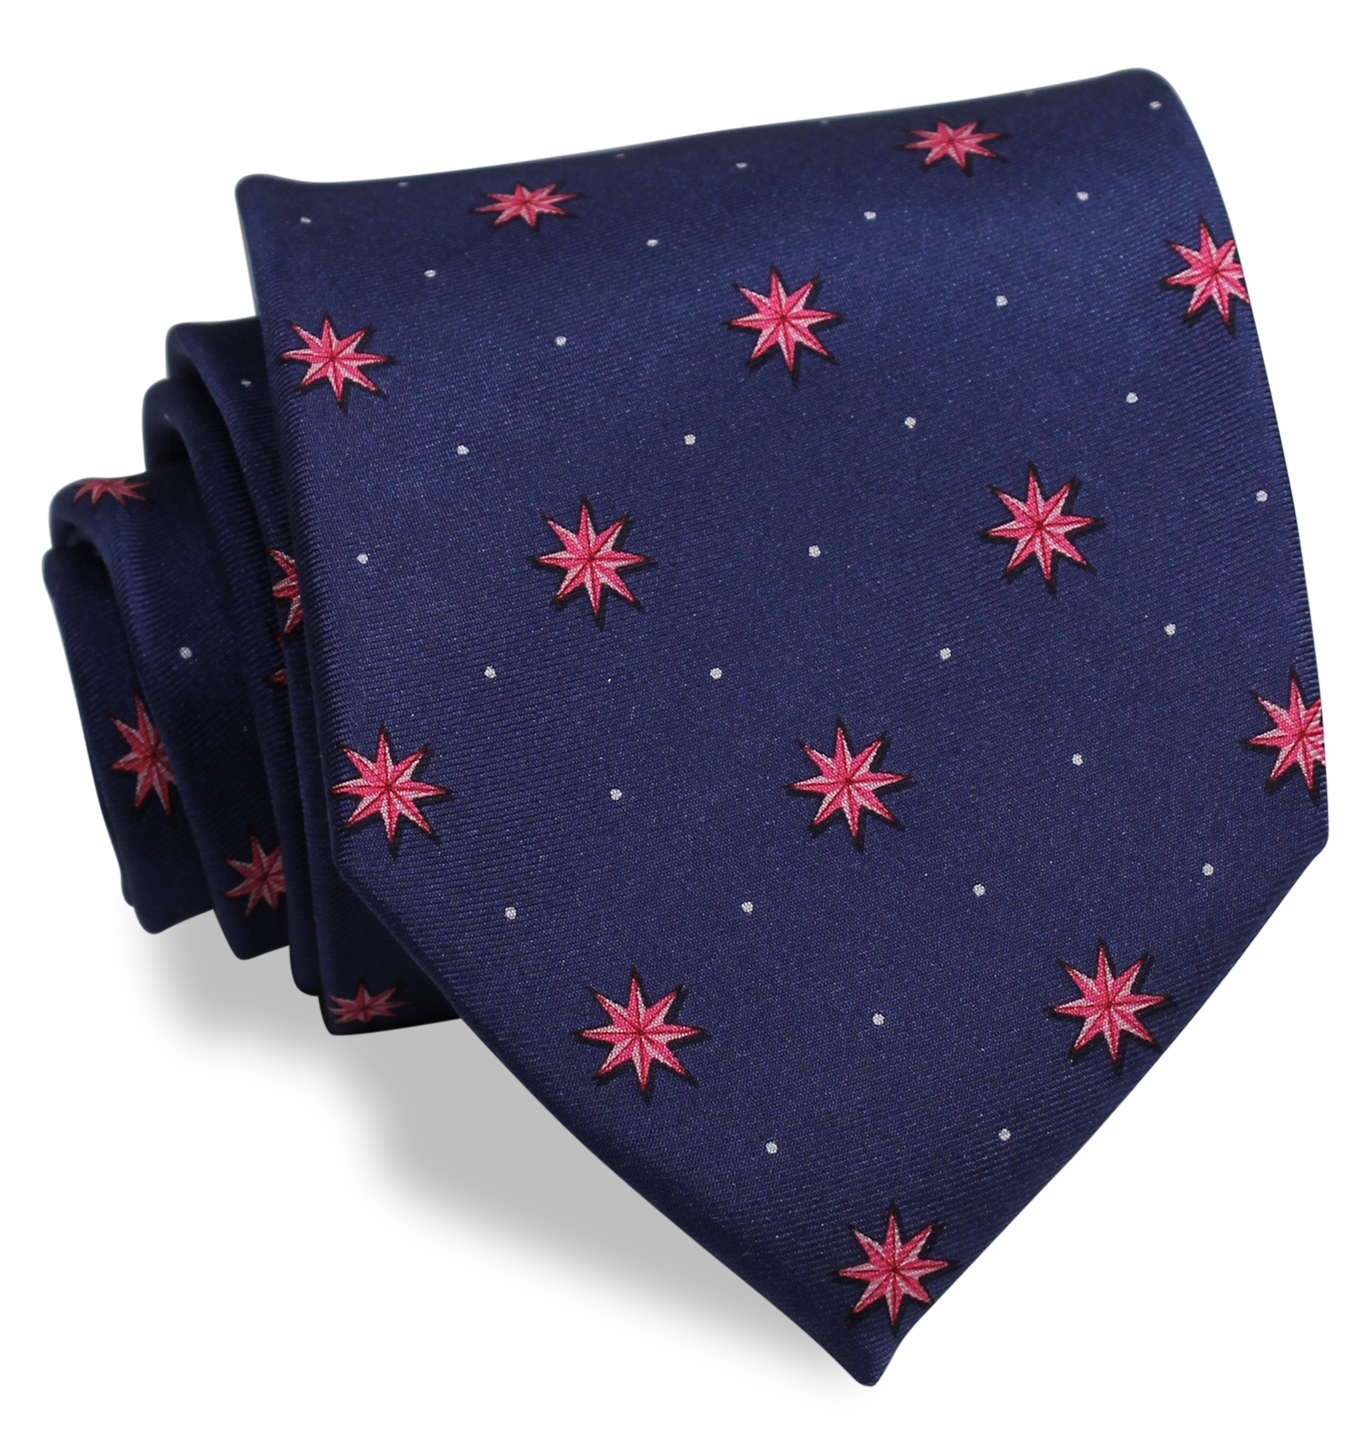 Starry Night: Tie - Navy